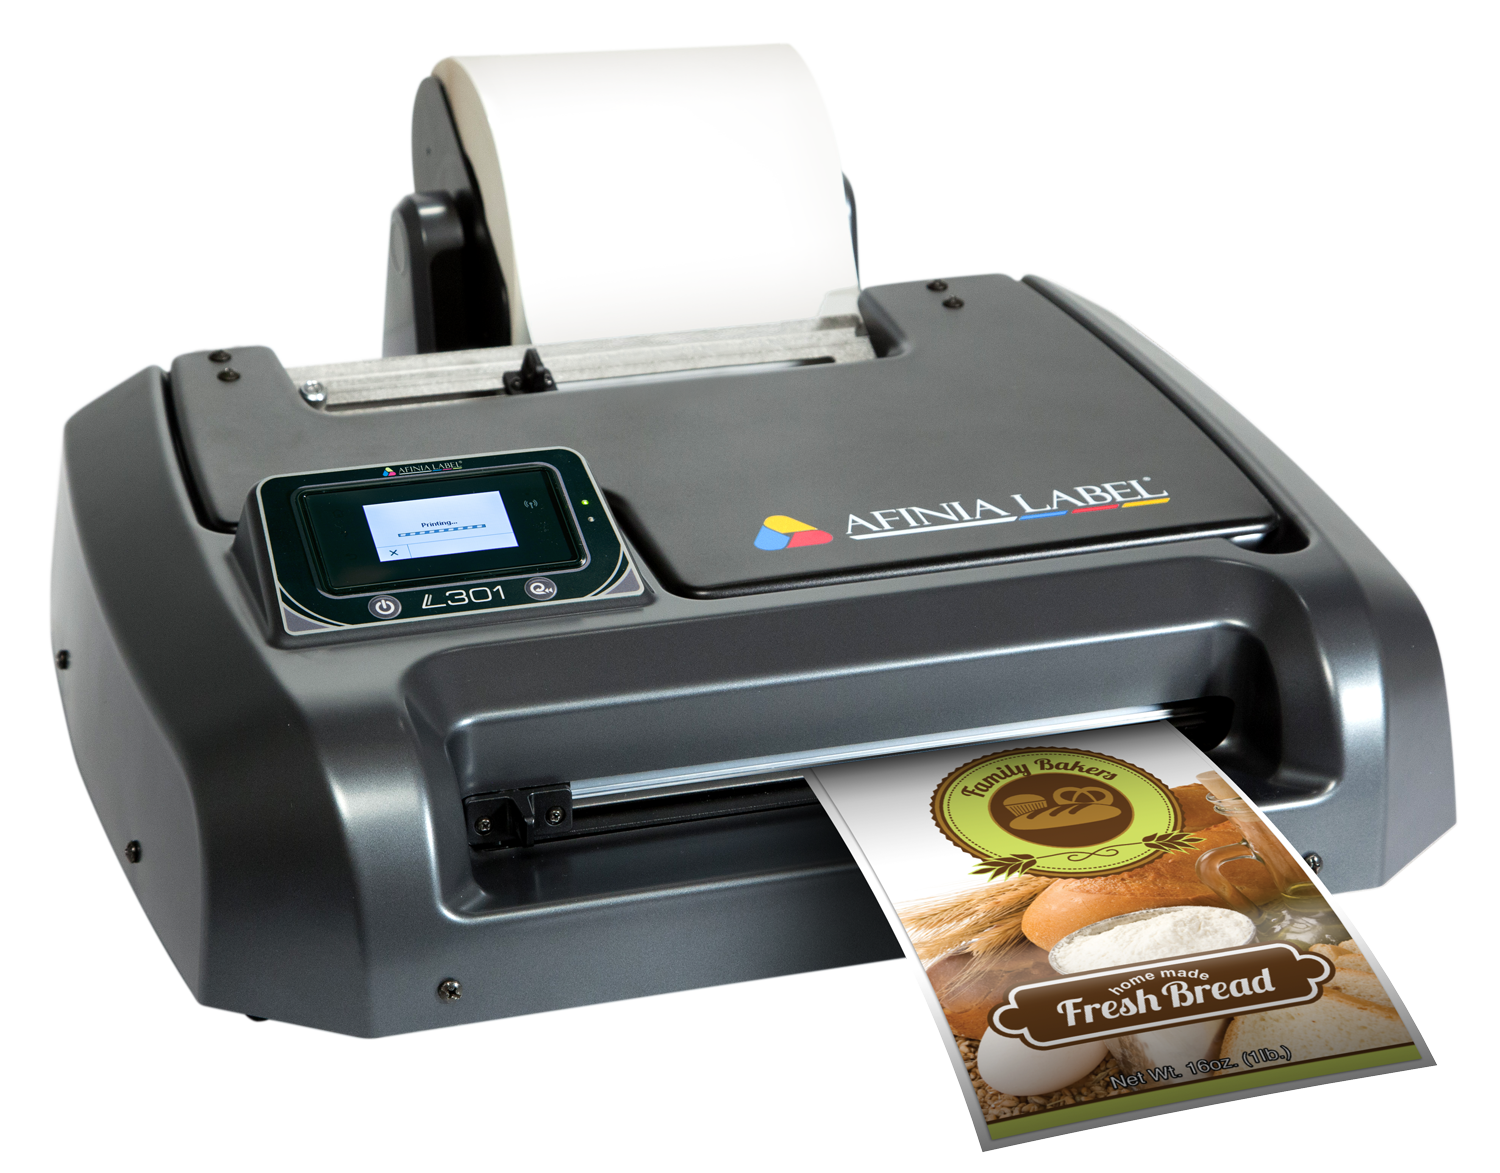 Afinia Label L301 Digital Color Inkjet Label Printer (AFN26849) Image 1